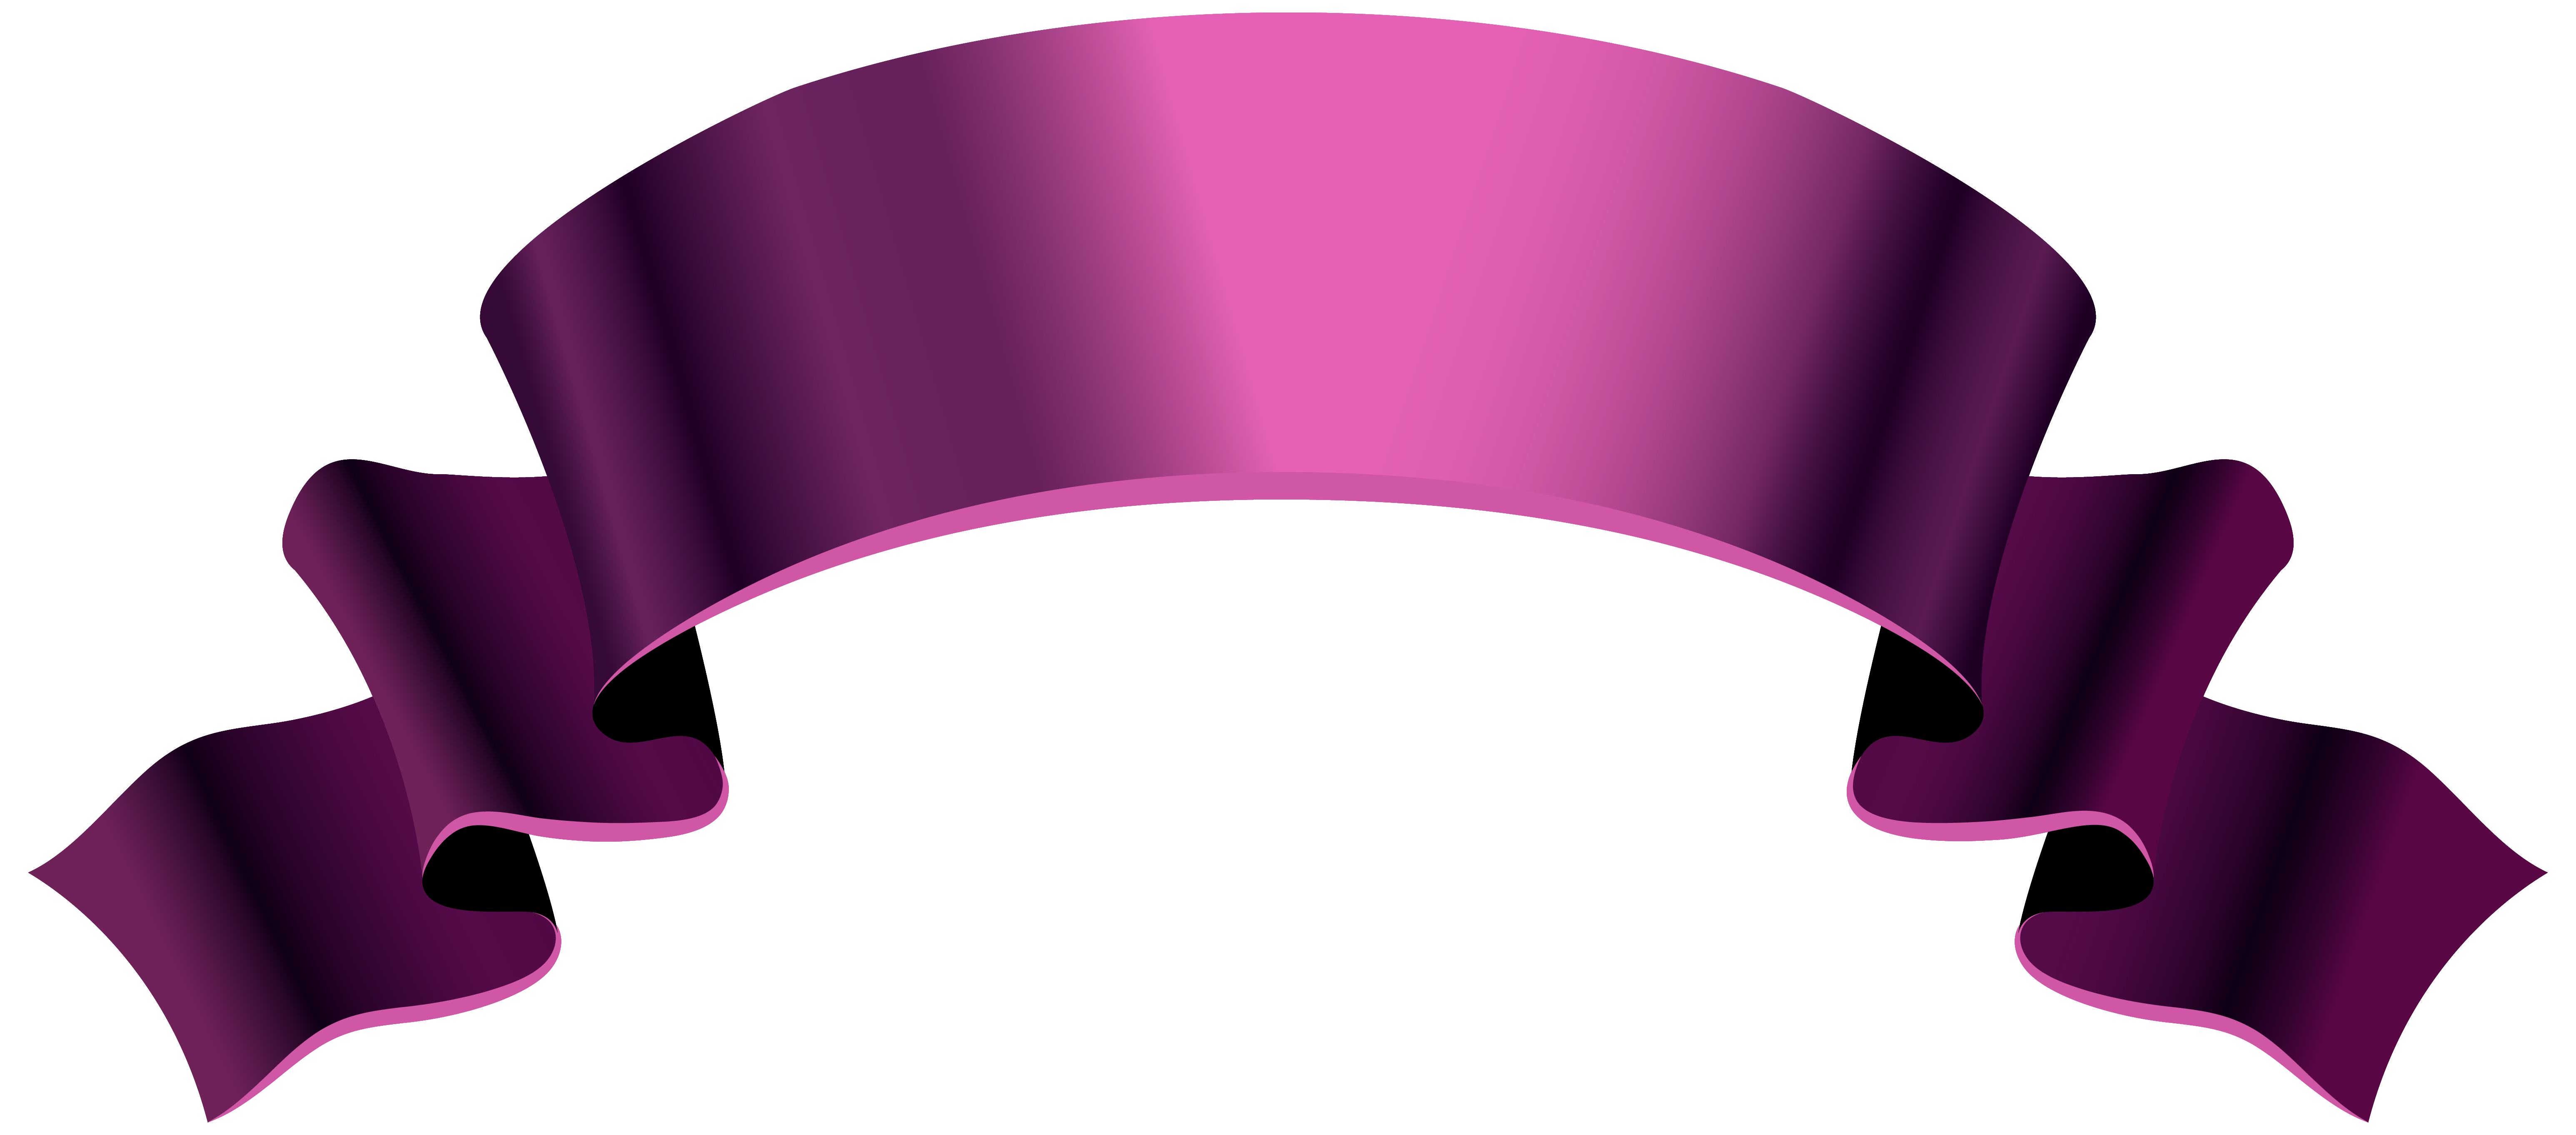 Pink Banner PNG Clipart Image.